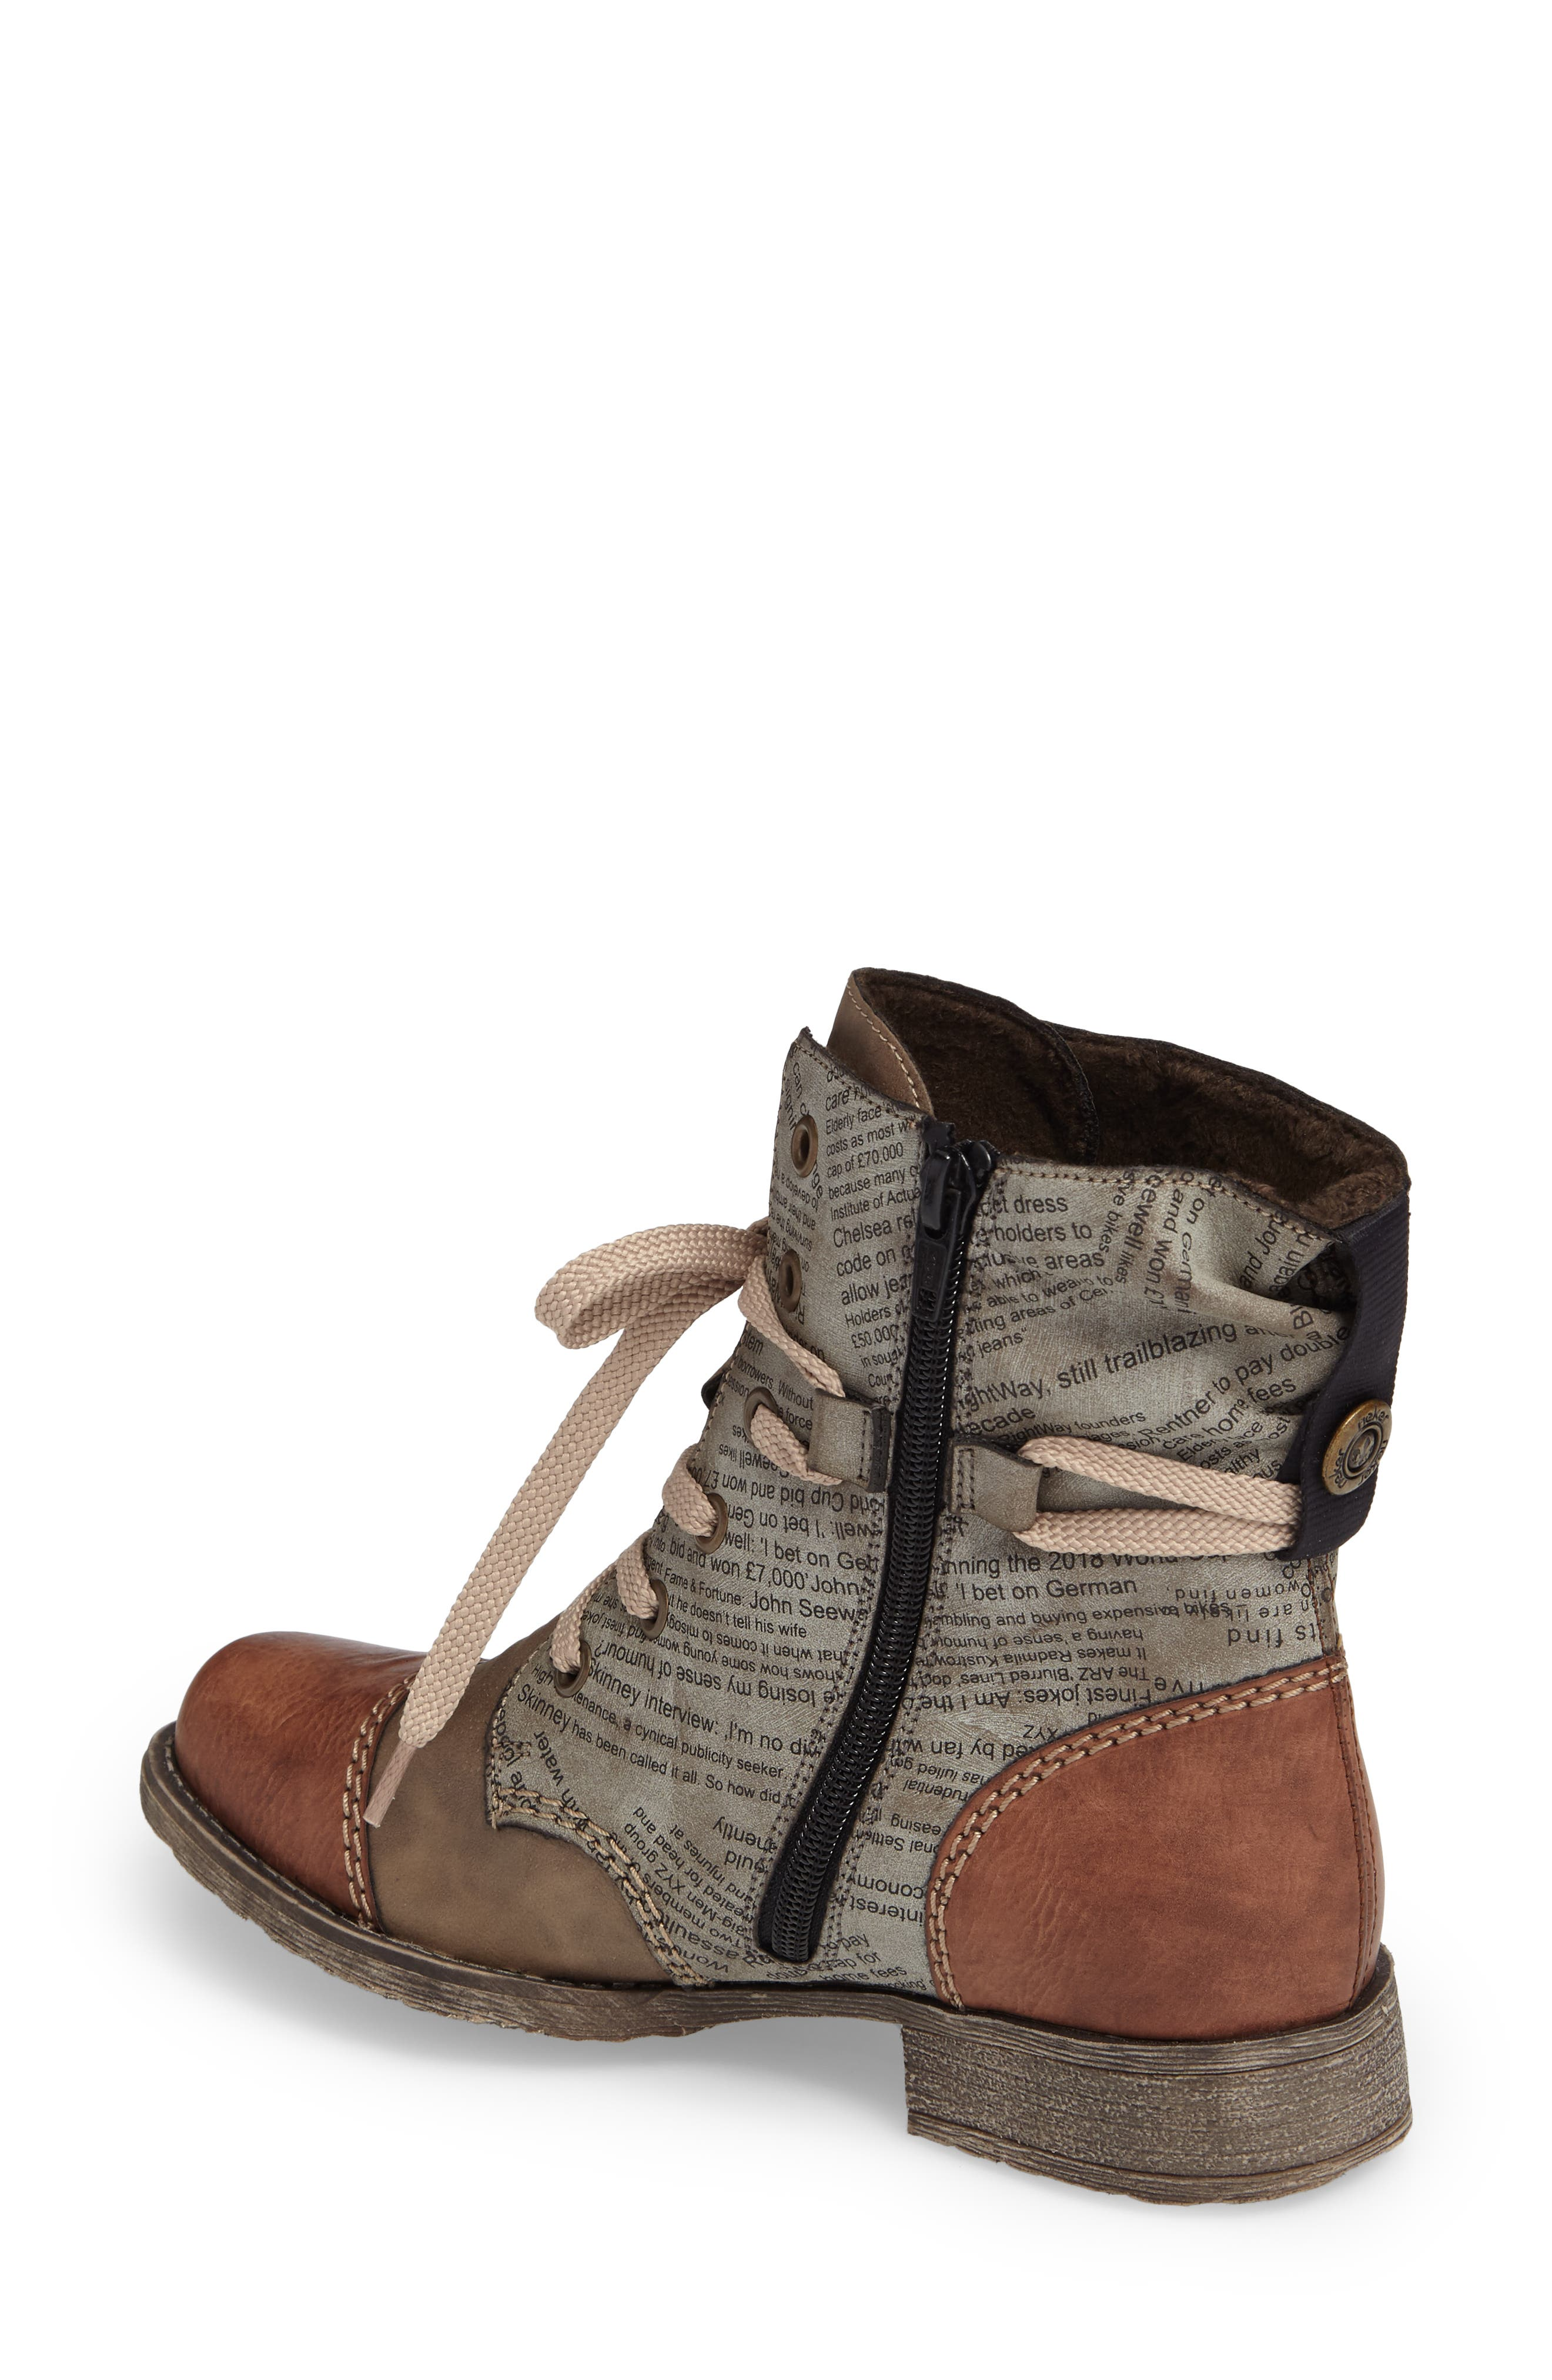 Payton 22 Lace-Up Boot,                             Alternate thumbnail 2, color,                             BRANDY/ CIGAR FAUX LEATHER